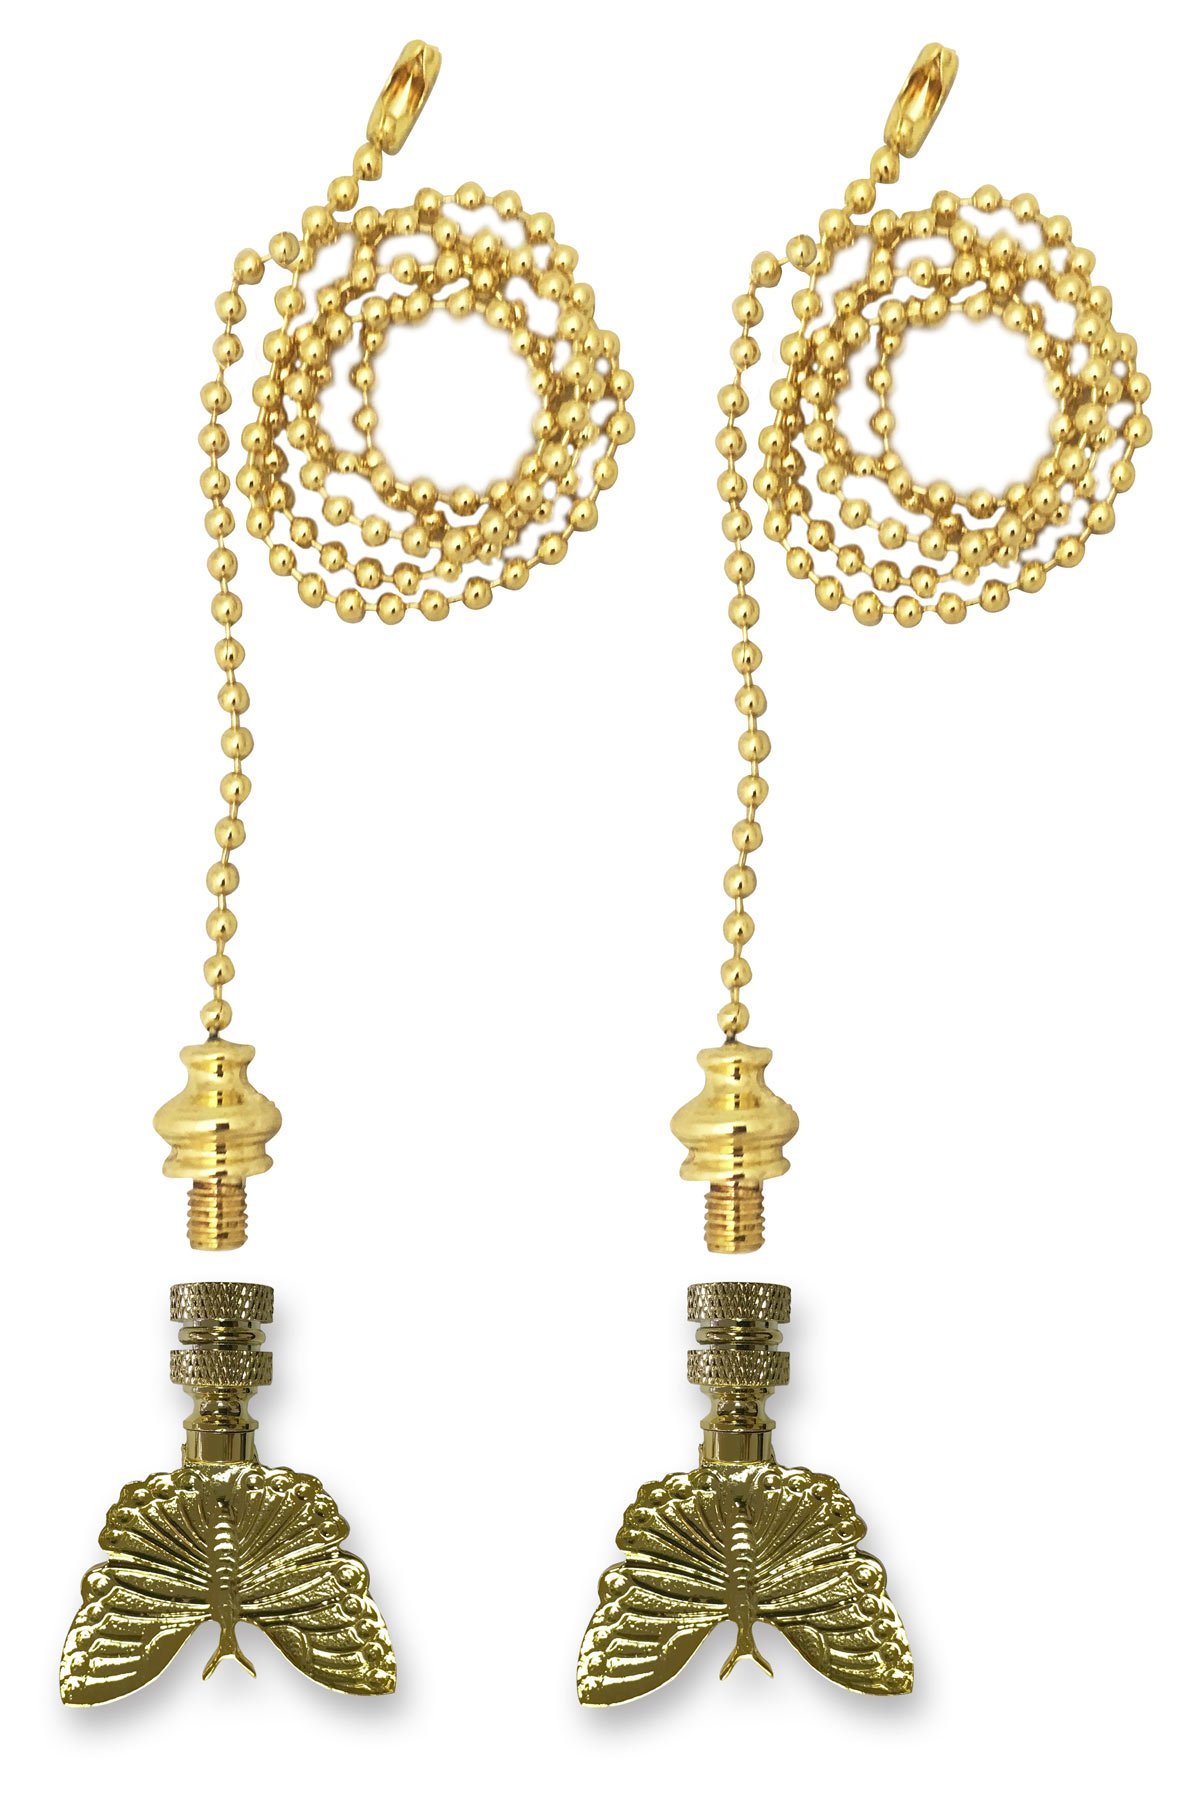 Royal Designs Fan Pull Chain with Monarch Butterfly Finial - Polished Brass - Set of 2